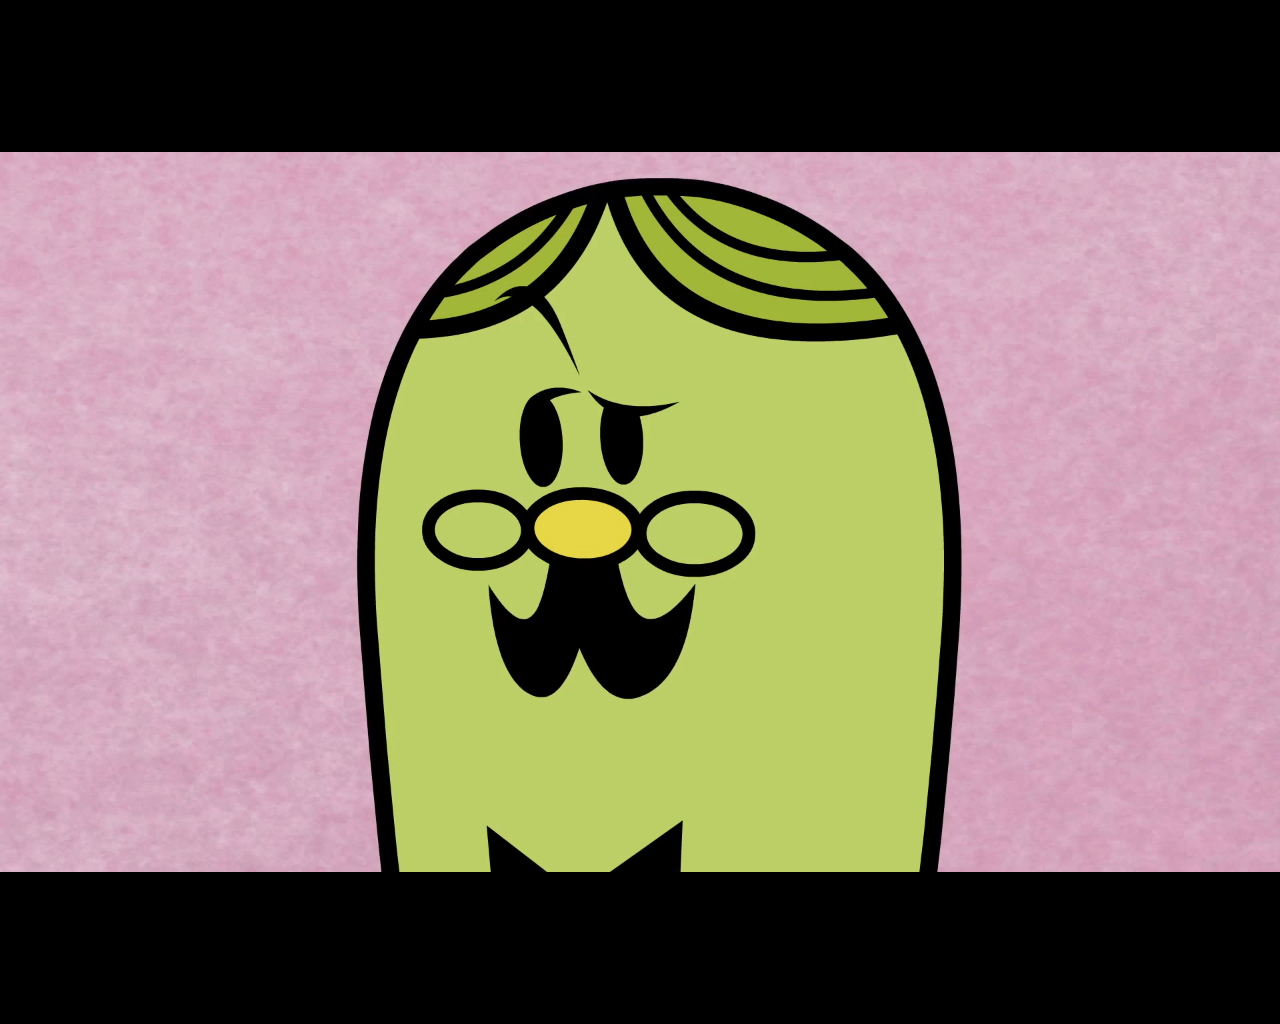 Mr. Fussy.png - Fussy PNG